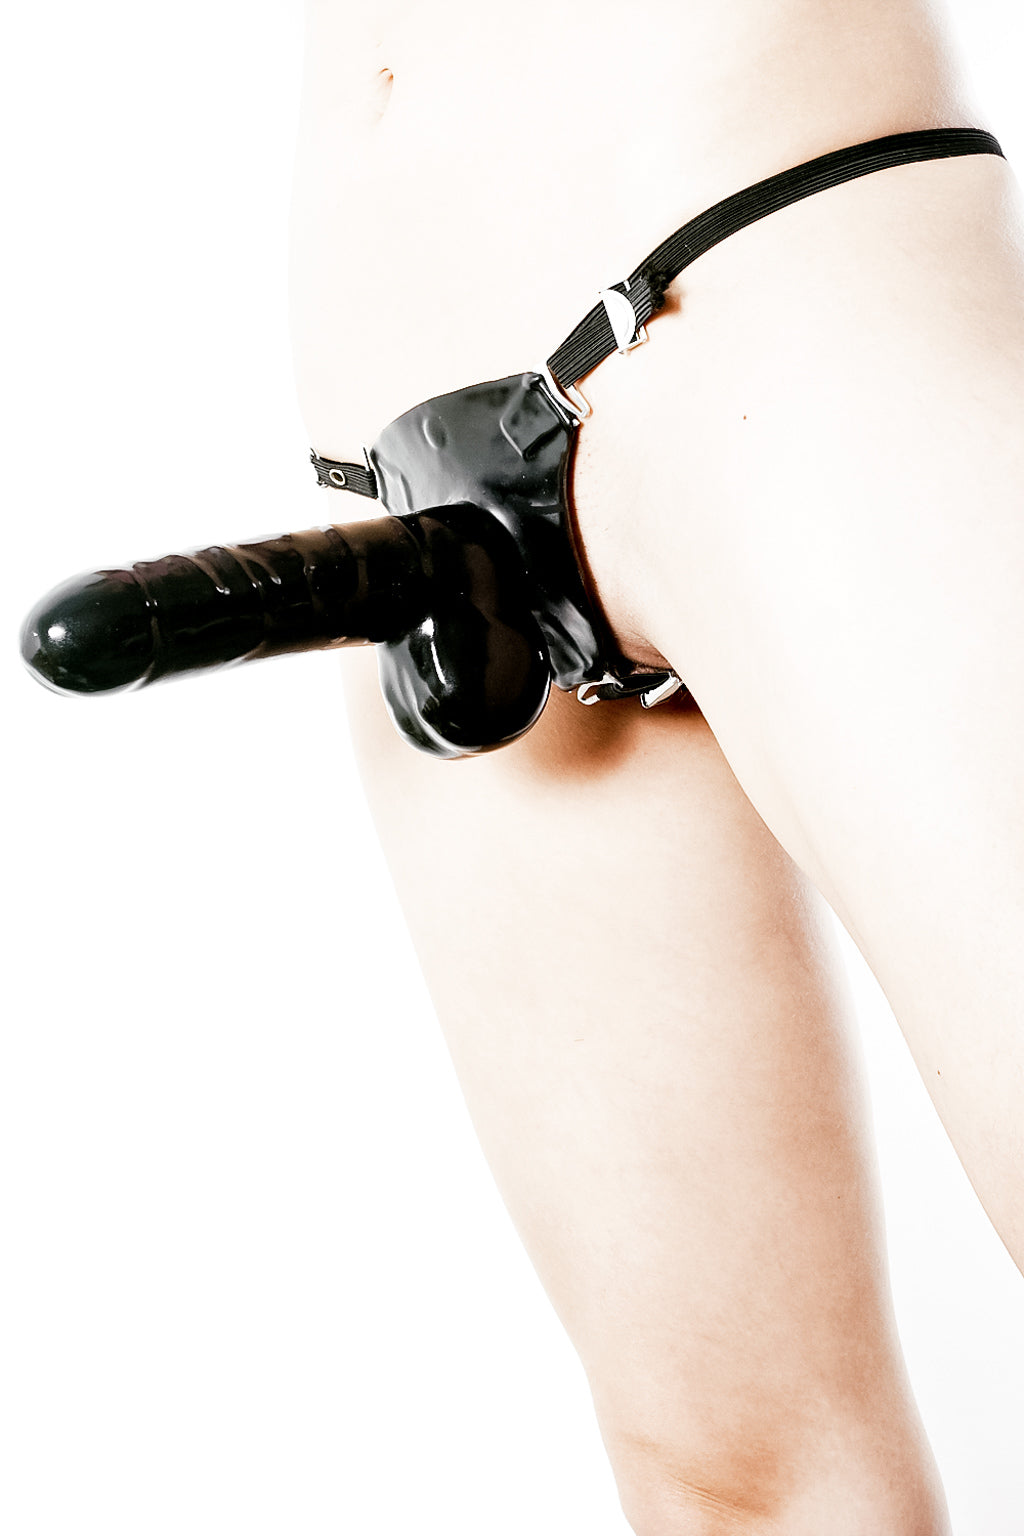 A woman wearing a strap-on dildo.